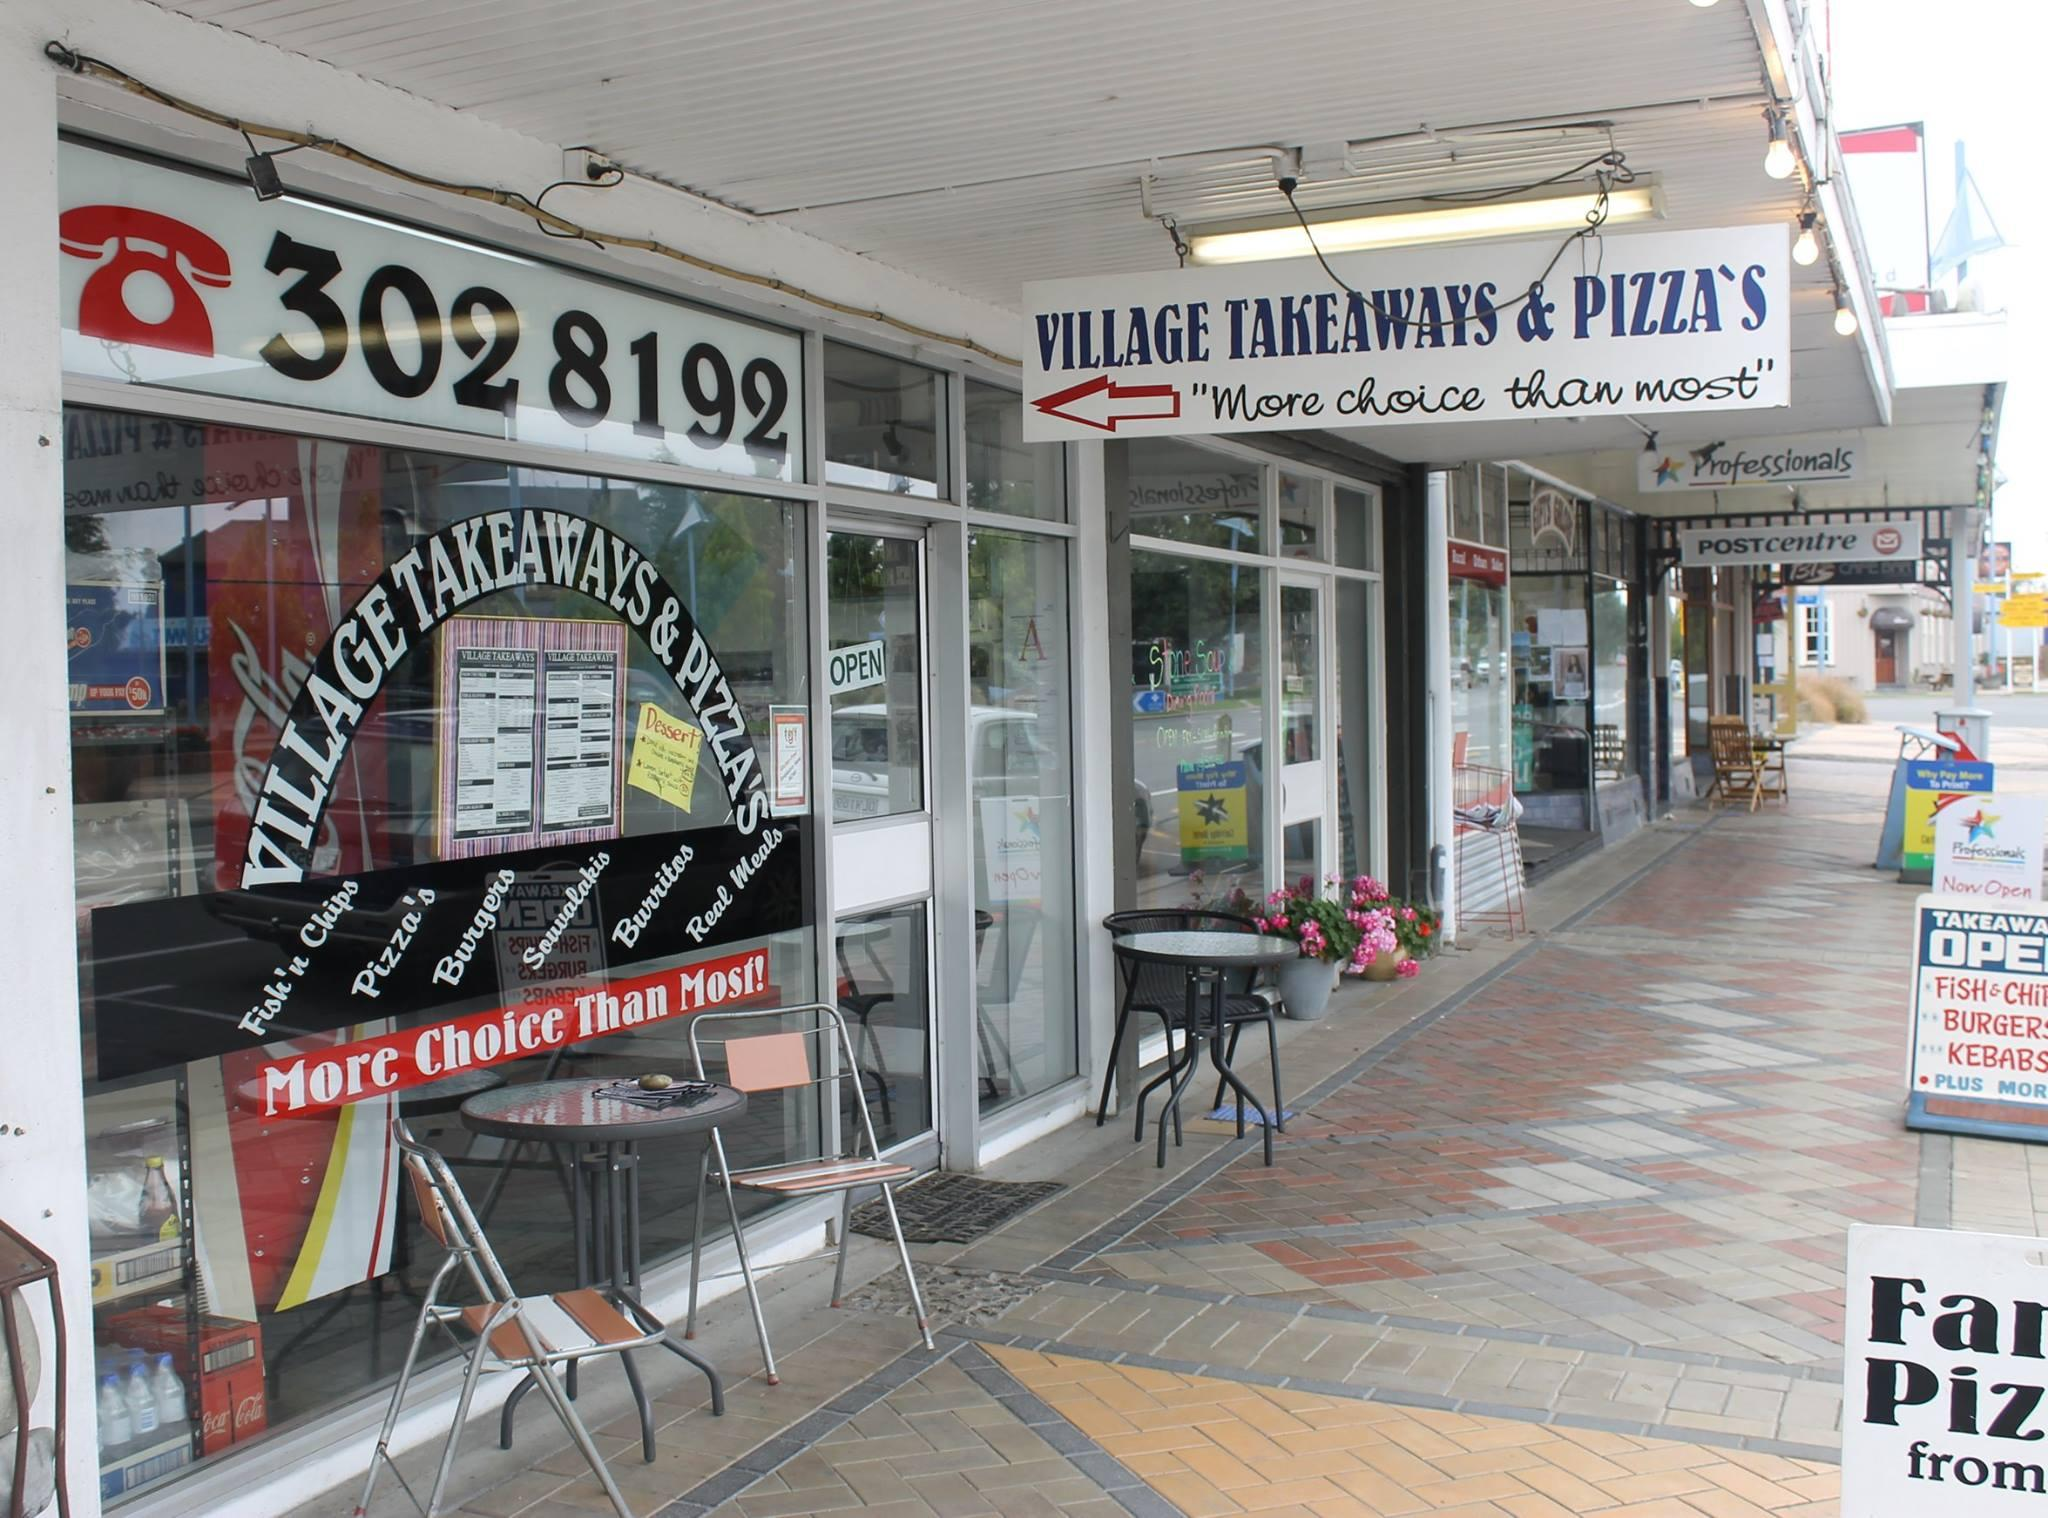 Village Takeaways and Pizza